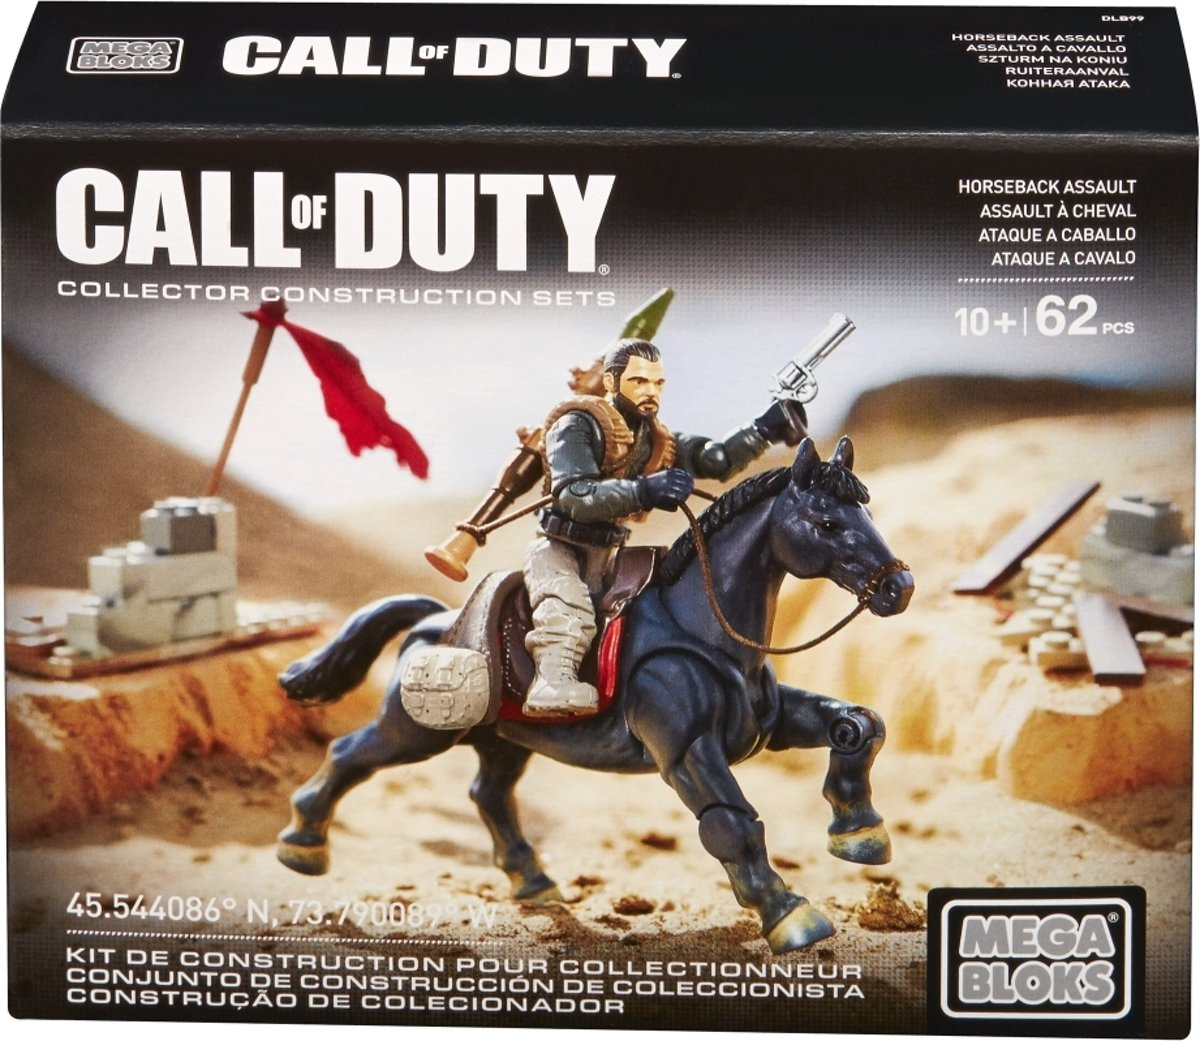 Horseback Assault Mega Bloks Call of Duty